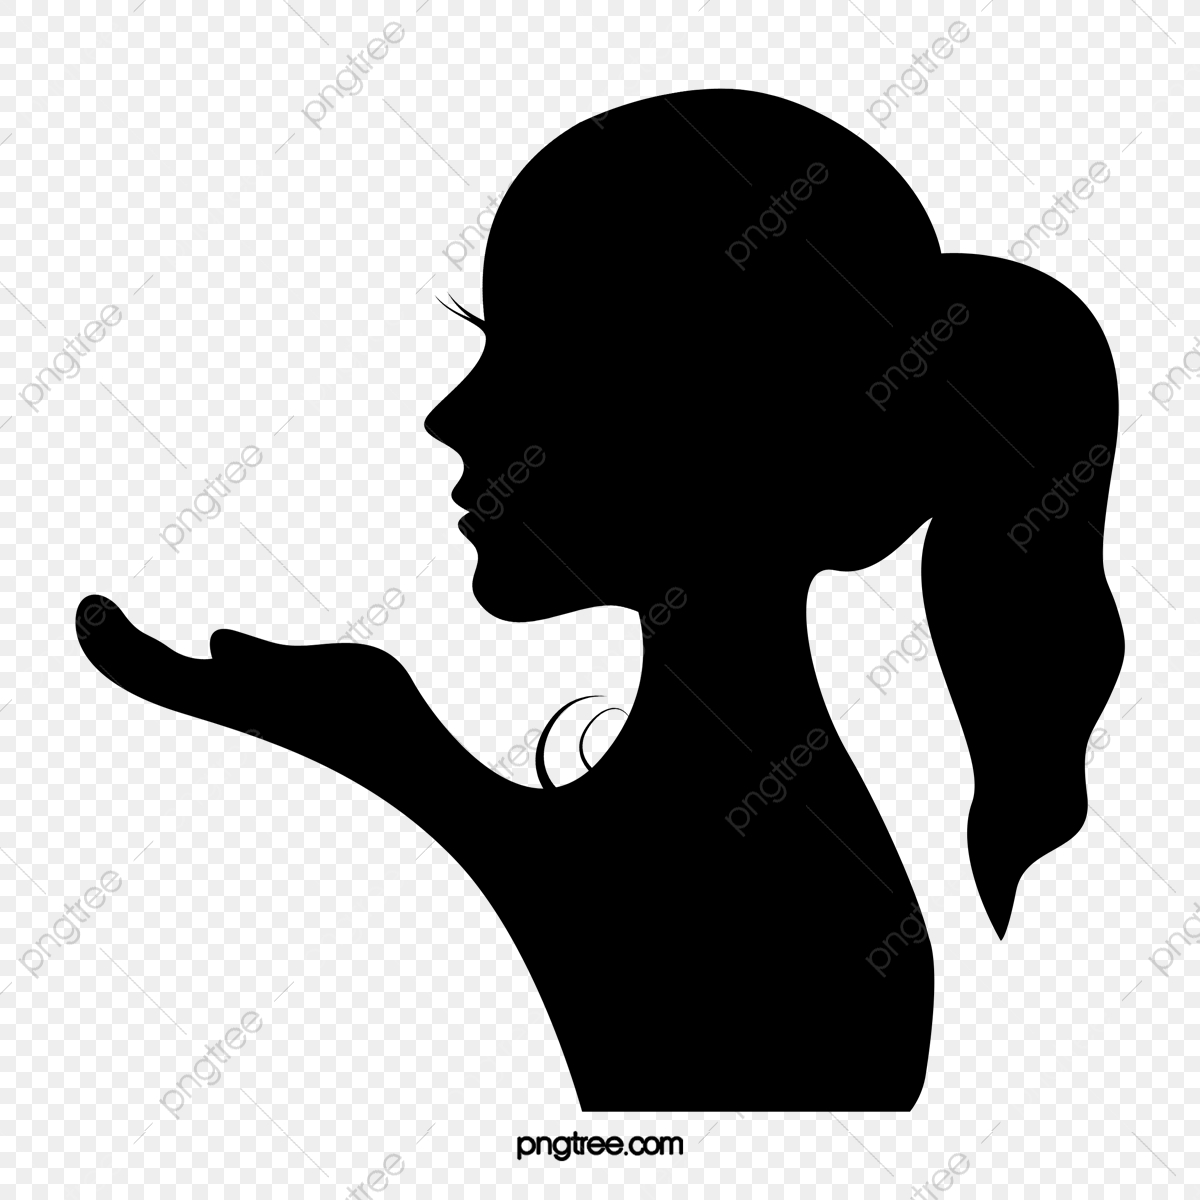 Face png and . Human clipart human vector